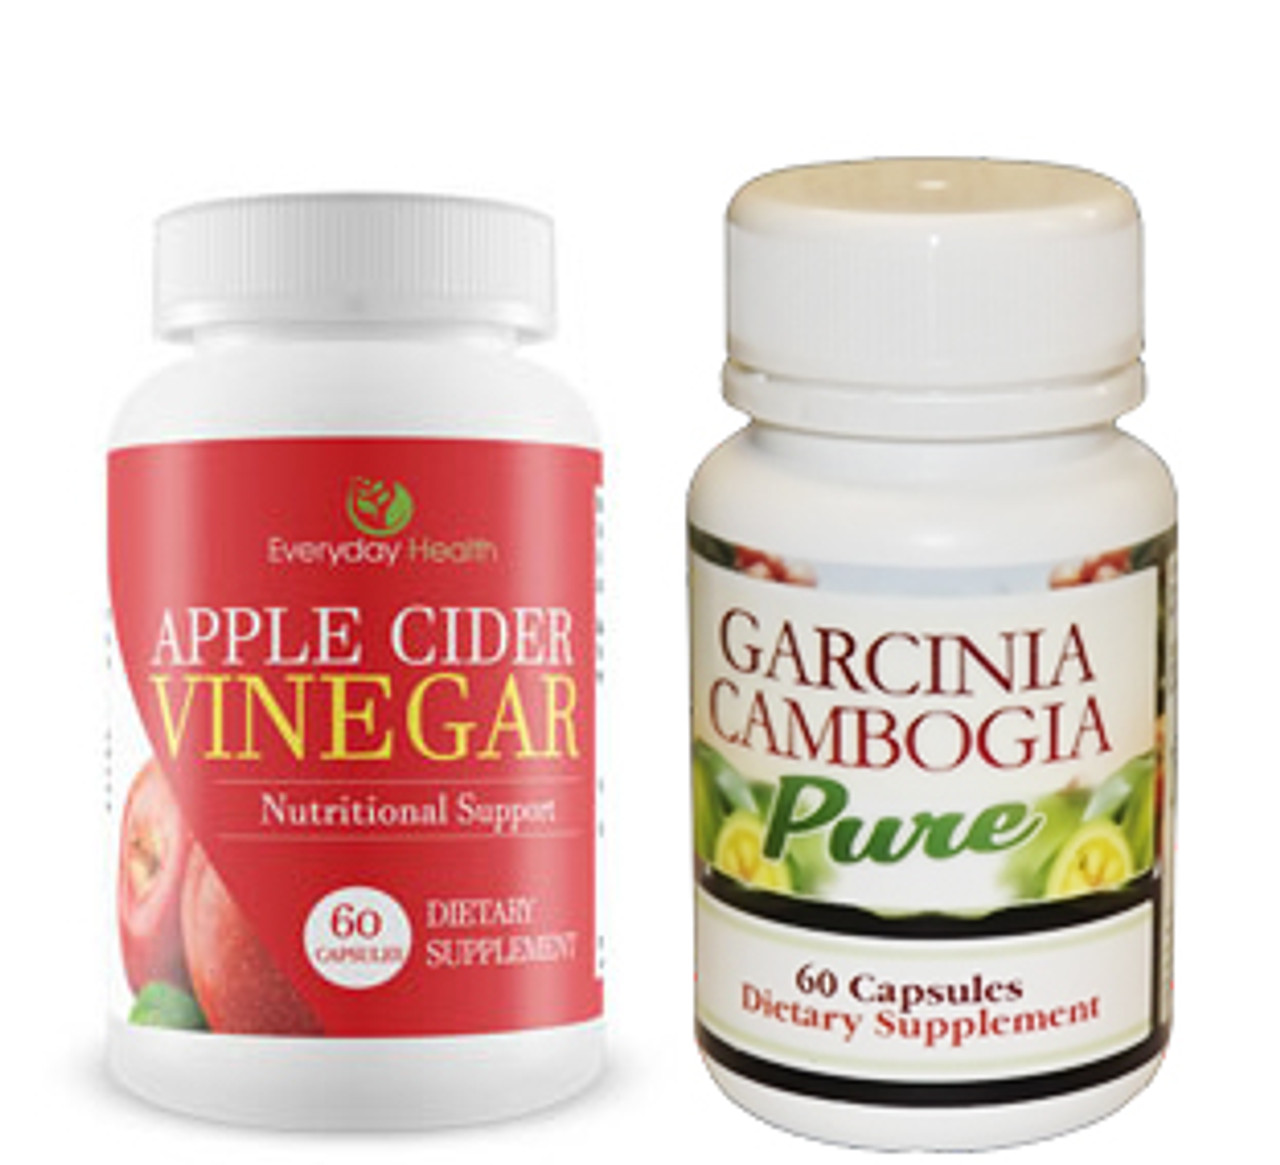 Apple cider and garcinia cambogia for weightloss